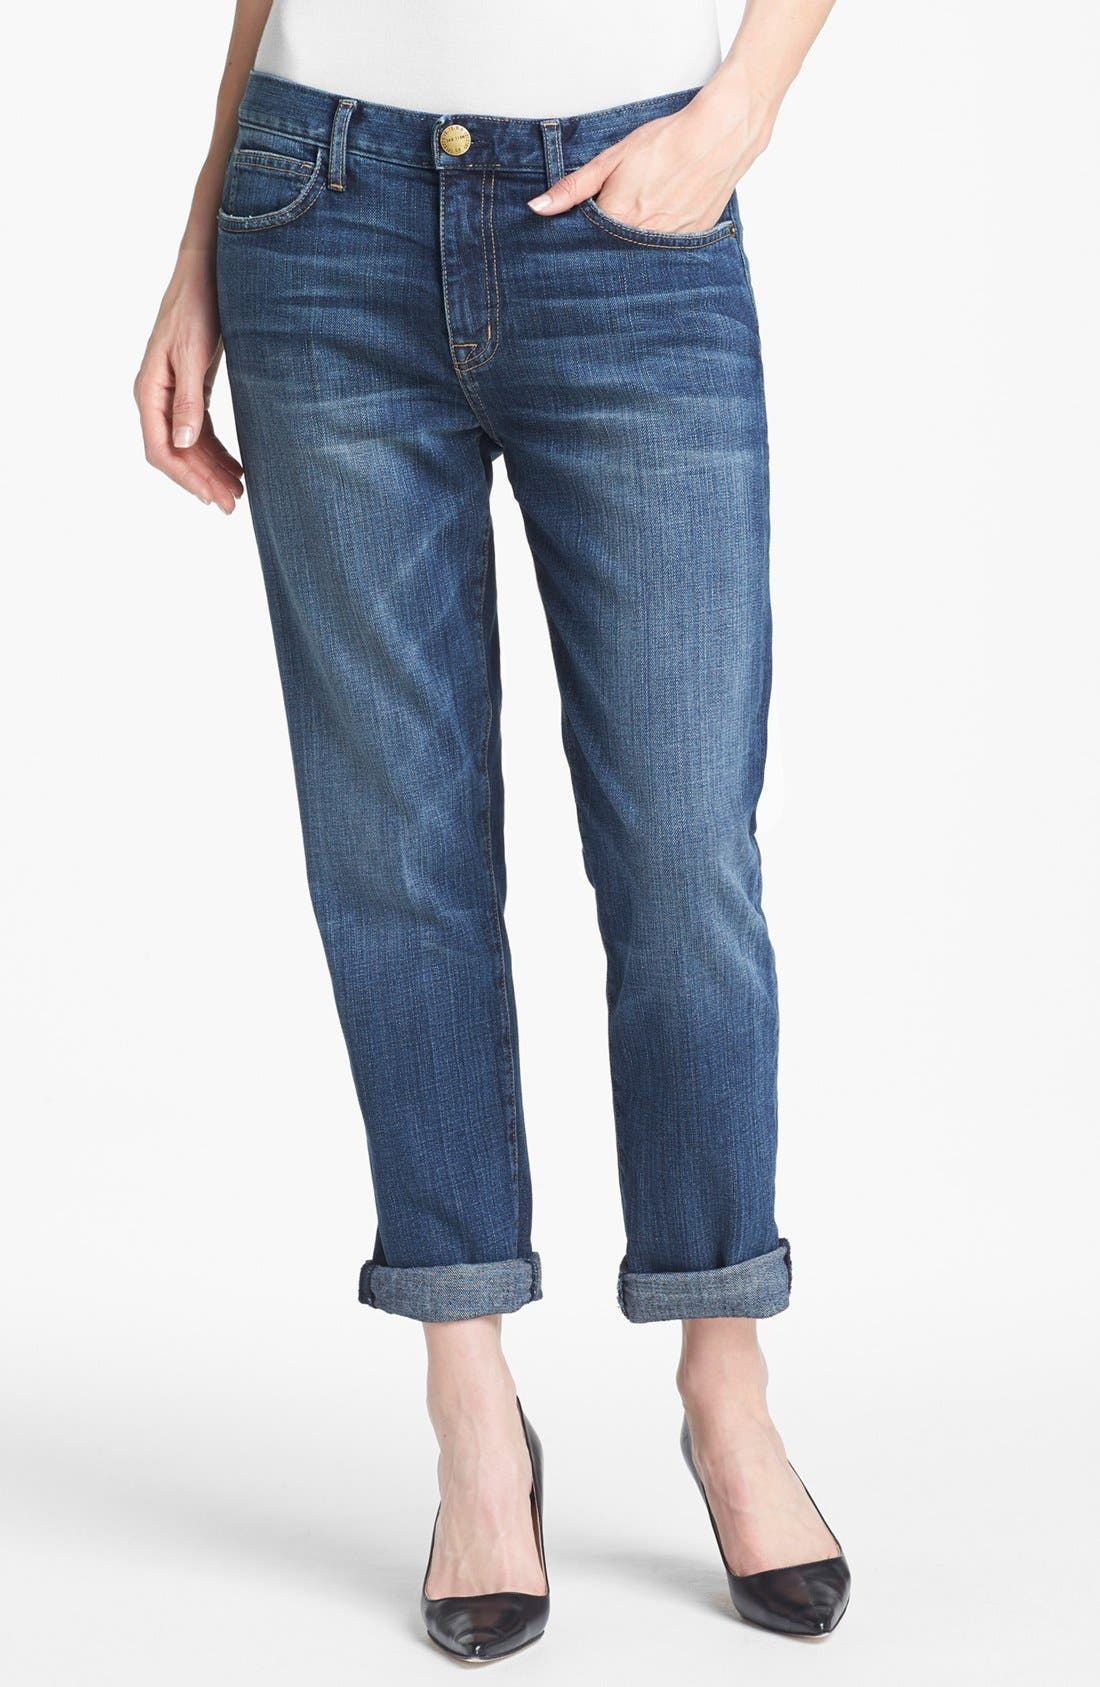 Main Image - Current/Elliott 'The Fling' Rolled Jeans (Loved)